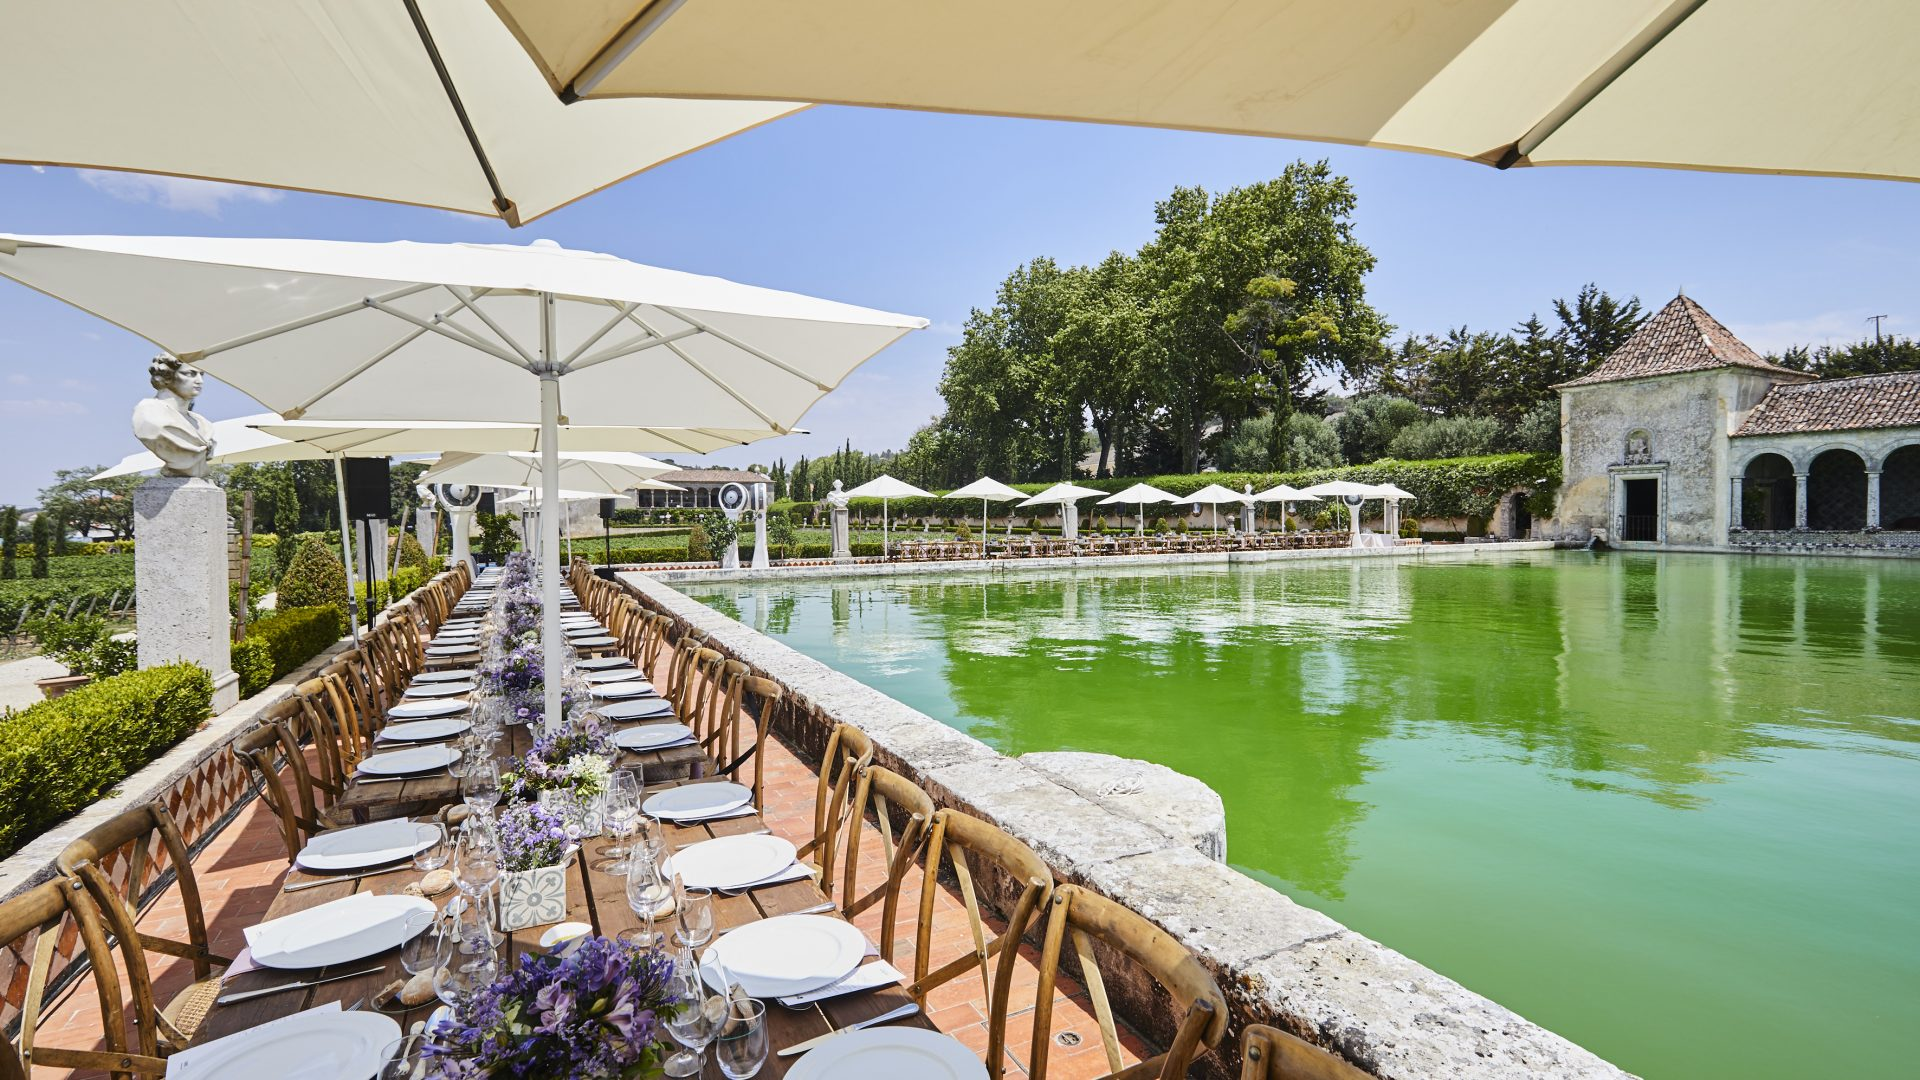 Corporate lunch setup - outdoor winery event venue in Lisbon